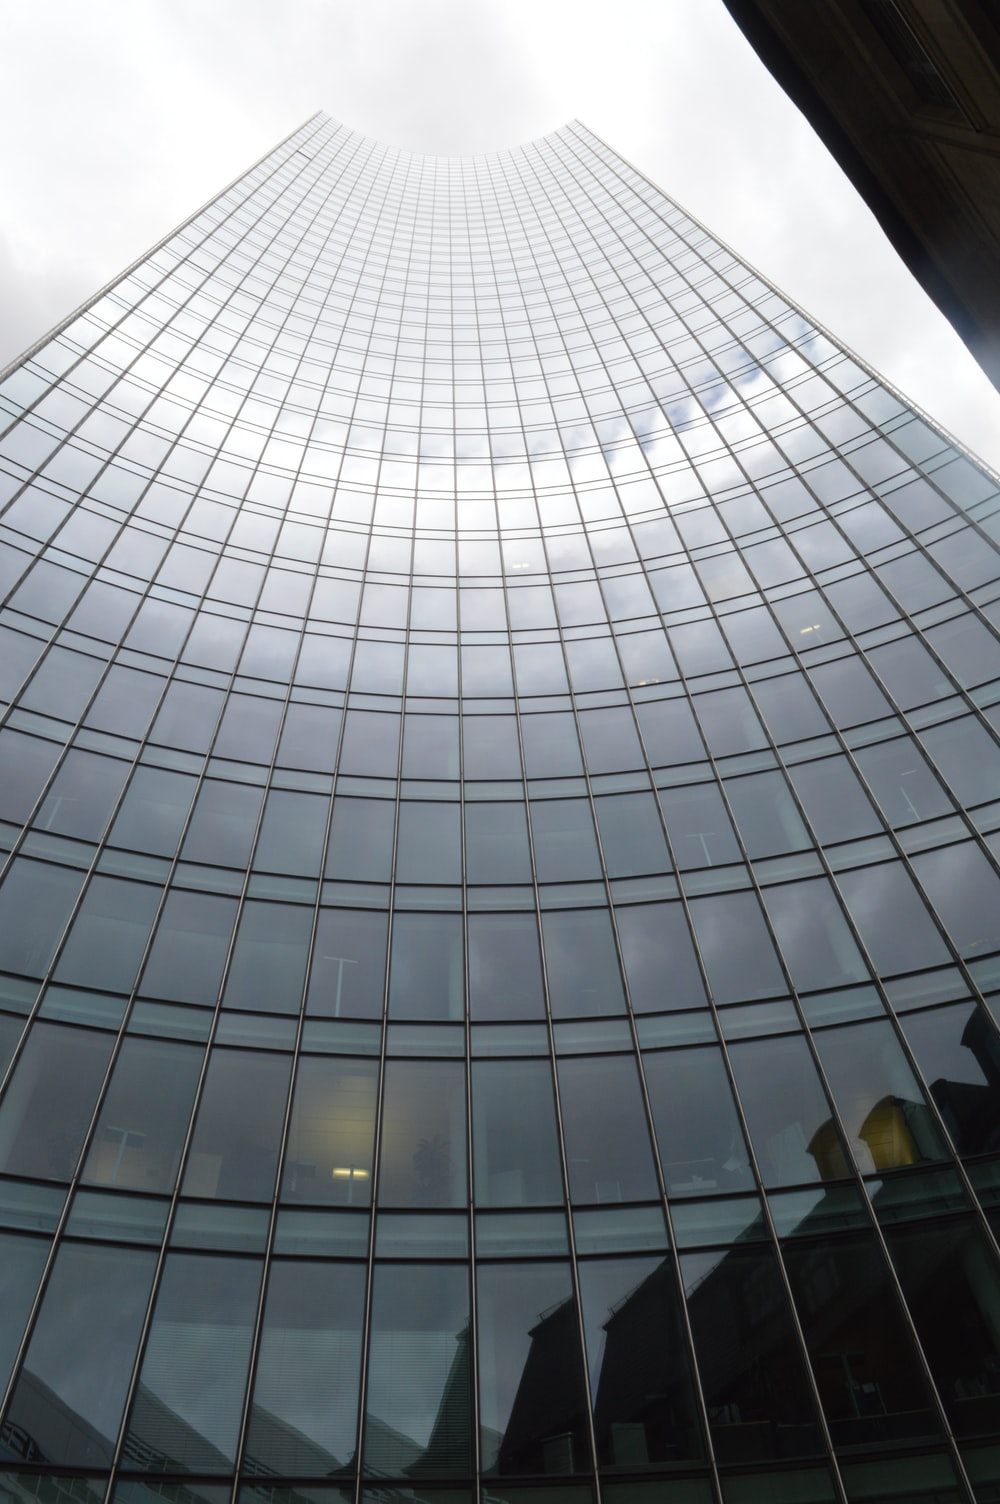 clear glass dome building during daytime